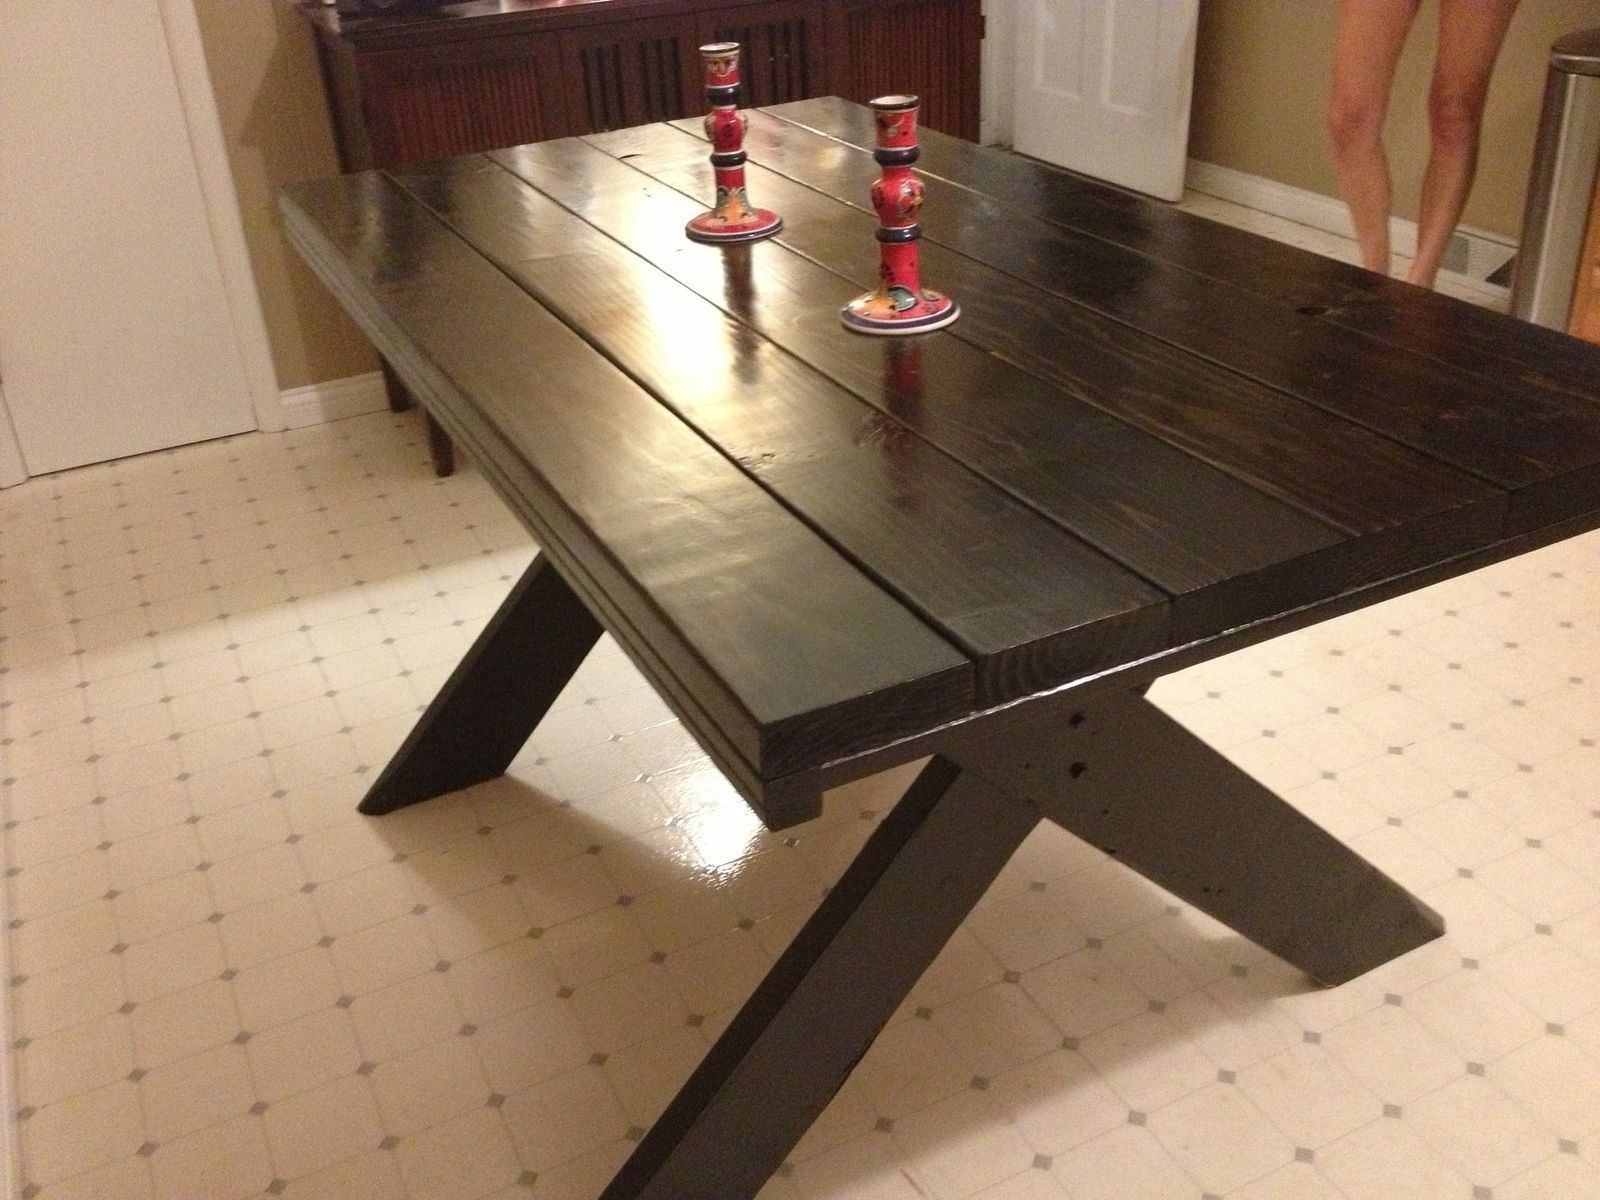 Picnic table as dining room table - Large Farm Style Dining Table With Classic X Style Legs Ideas